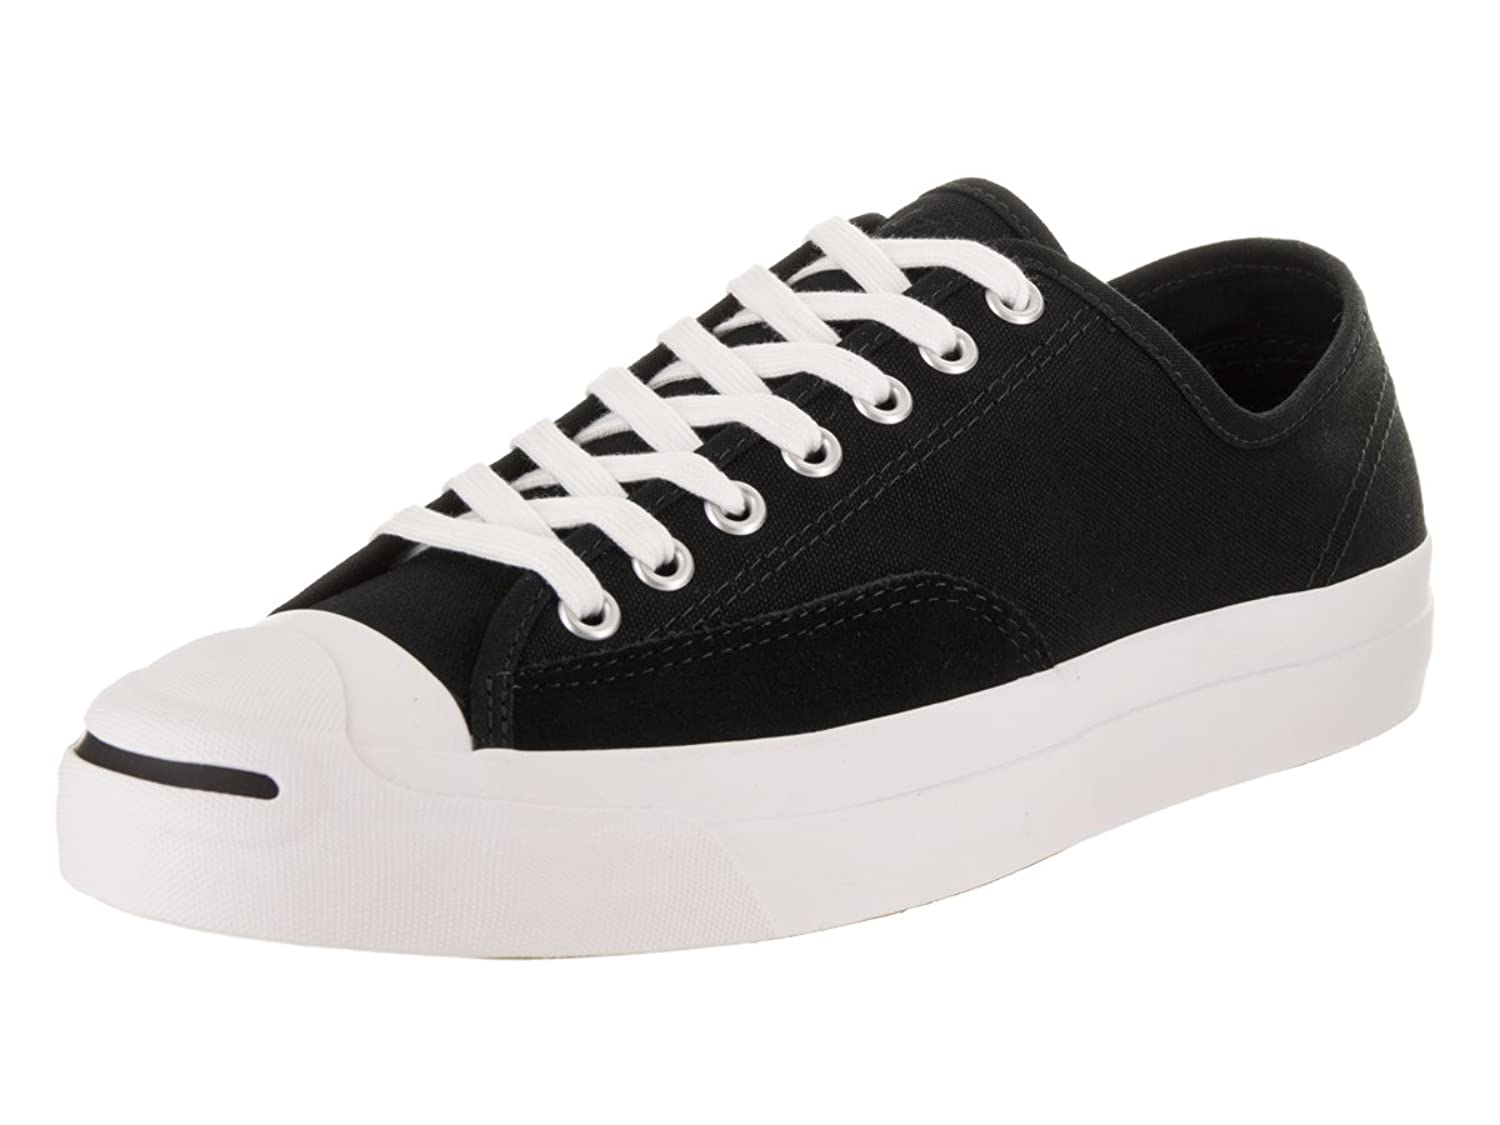 bb17e5d0bb1 ... Converse Unisex Jack Purcell Pro Ox Casual Shoe ...